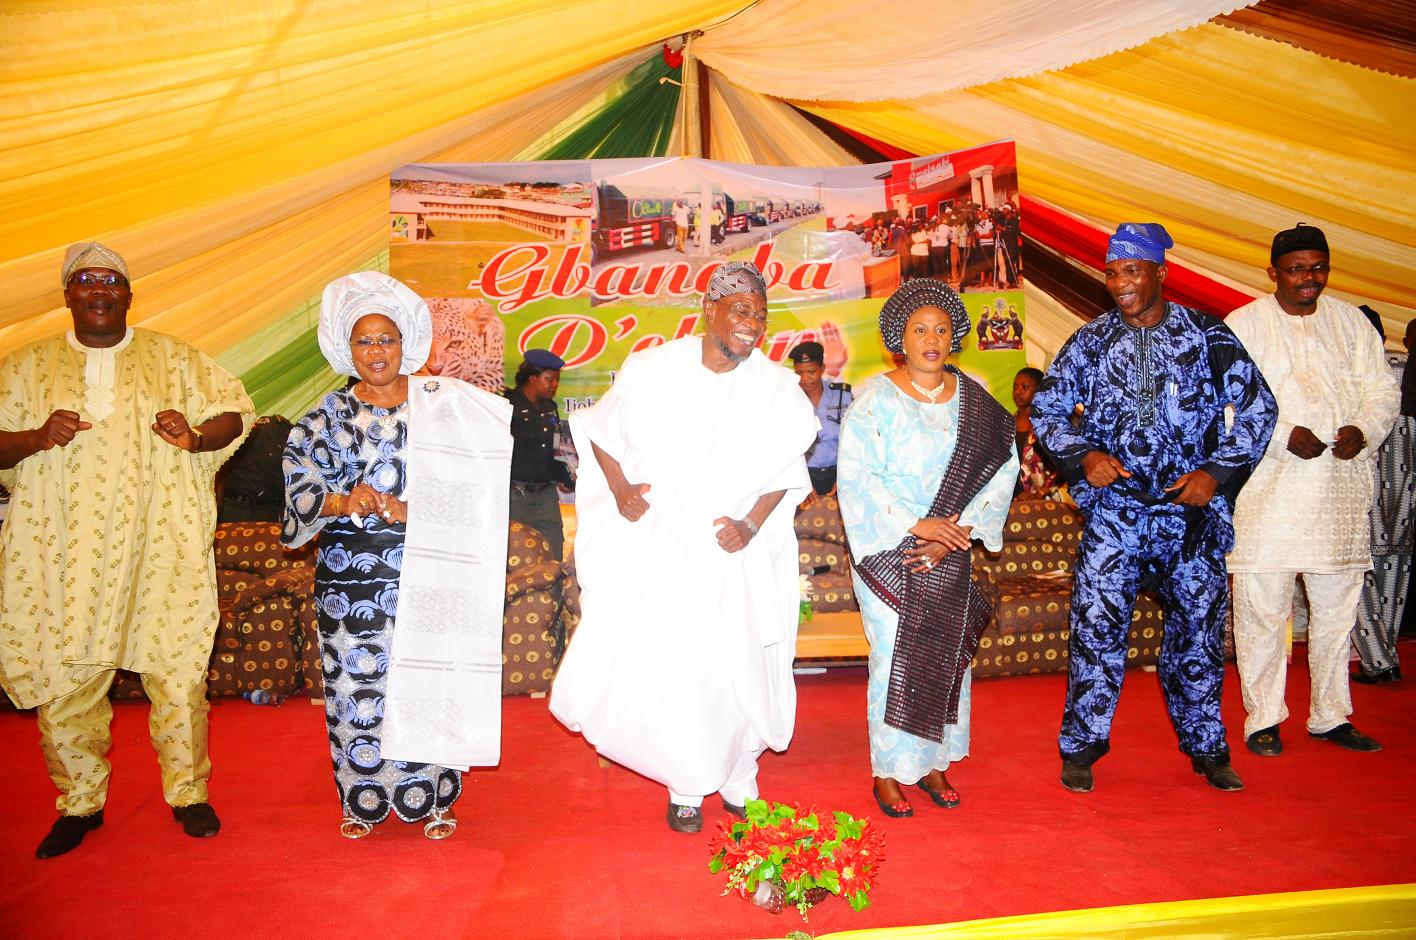 "From left, Speaker State Assembly of Osun, Honourable Najeem Salam; Deputy Governor State of Osun, Mrs Titi Laoye-Tomori; Governor, Ogbeni Rauf Aregbesola; his Wife, Sherifat;  Secretary to the State Government of Osun, Alhaji Moshood Adeoti and Member House of Representatives representing Atakunmosa East/West and Ilesa East/West, Honourable Ajibola Famurewa, after words of support for Aregbesola Second Term in office by people of Ijeshaland, during the 6th edition of an interactive programme tagged, ""Gban-gba Dekun"" in Ijesha South Federal Constituency consisting of Ilesa West, Ilesa East, Atakumosa East and Atakumosa West Local Governments at Ilesa High School, Ilesa, State of Osun last week"